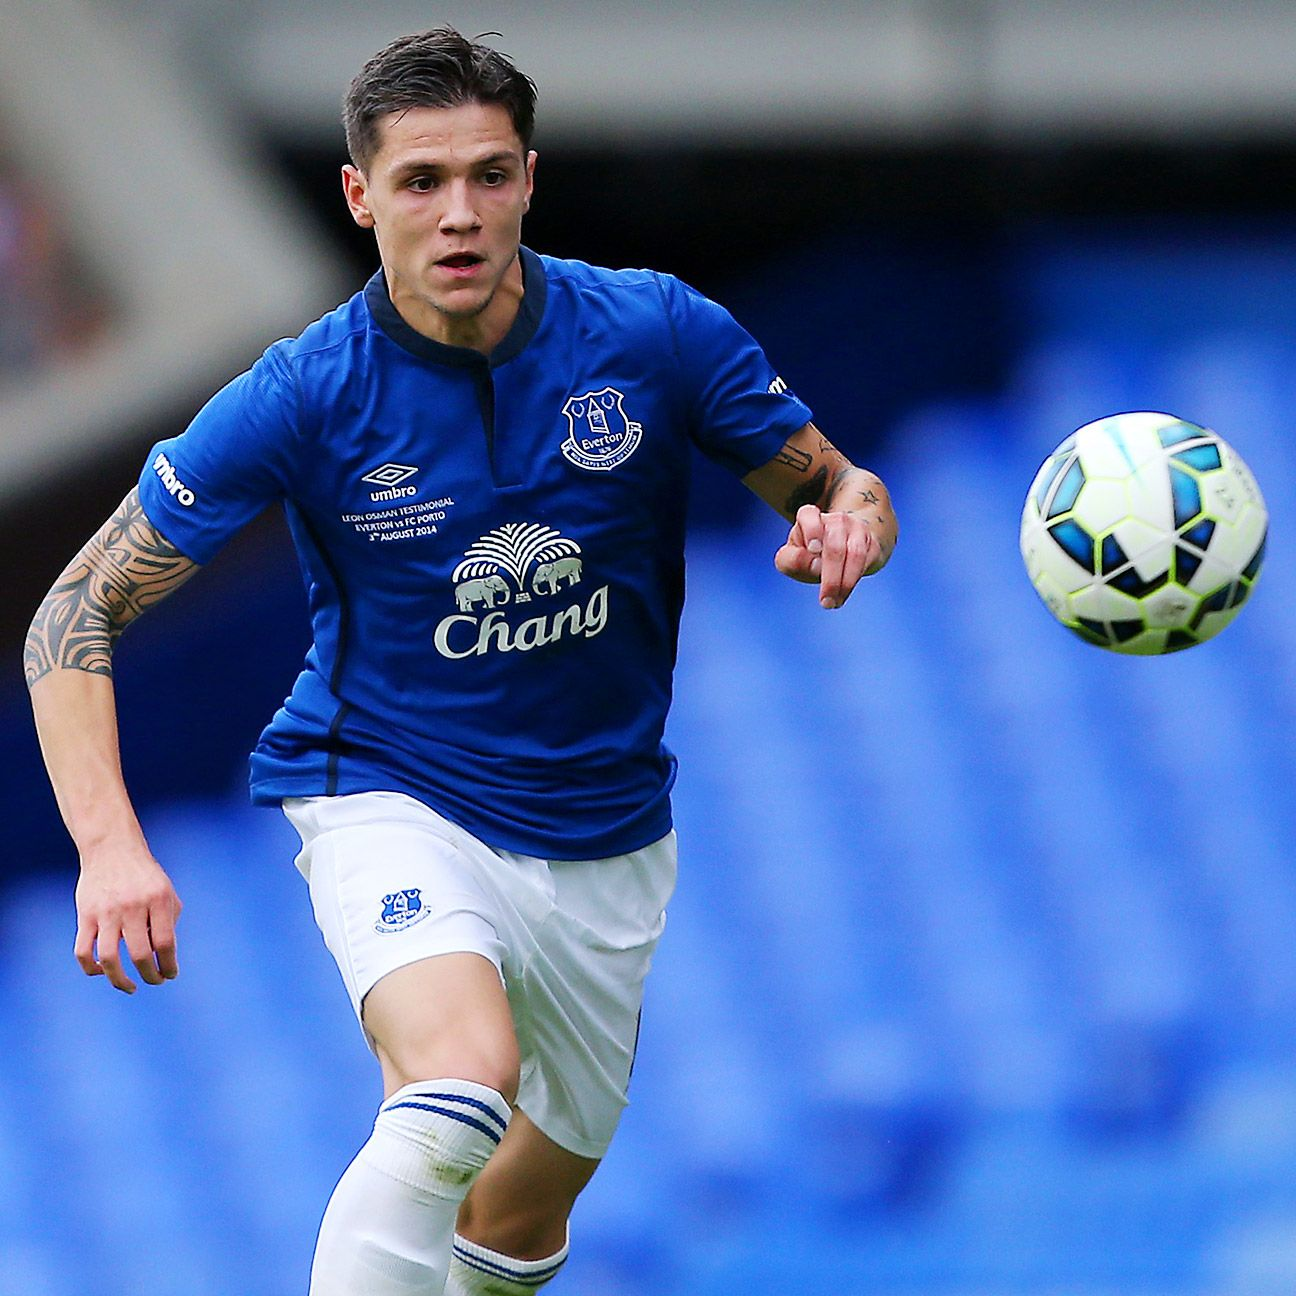 New arrival Muhamed Besic has impressed during Everton's preseason.